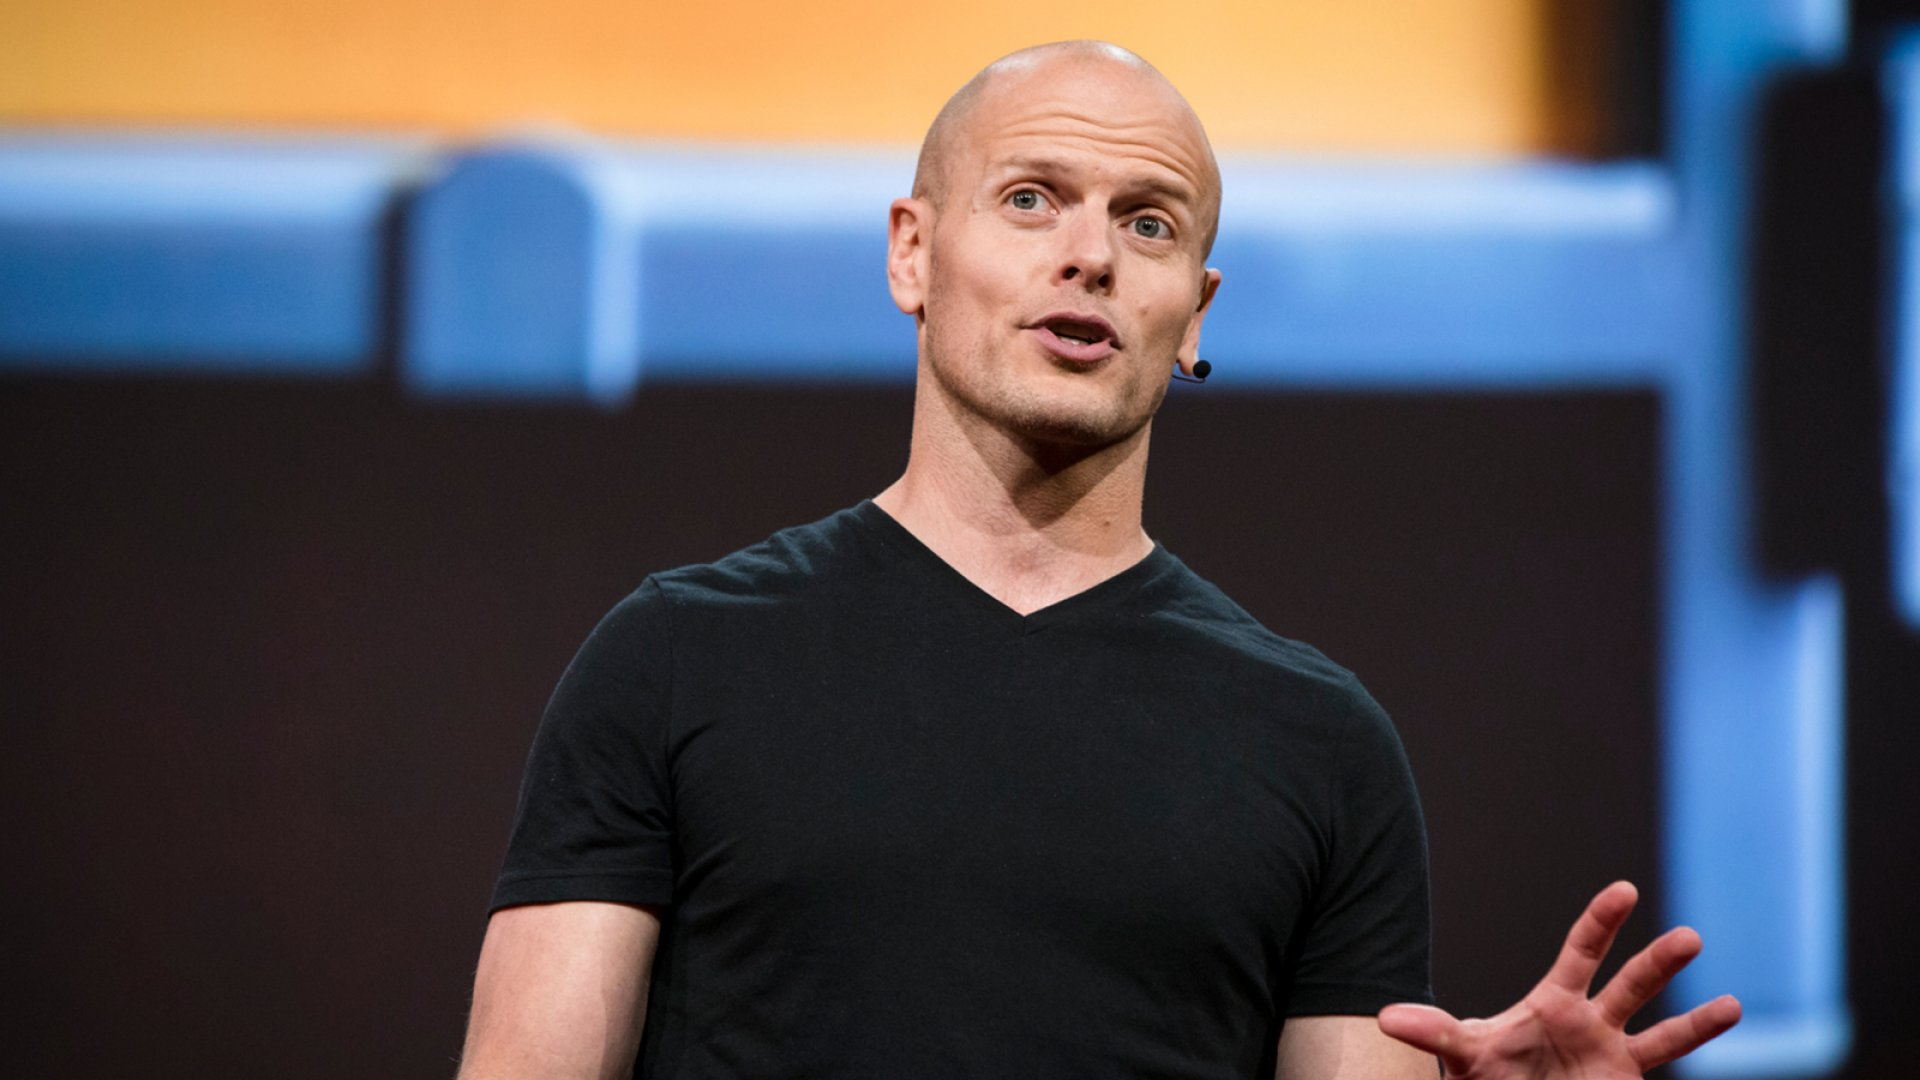 Tim Ferriss speaks at TED2017.